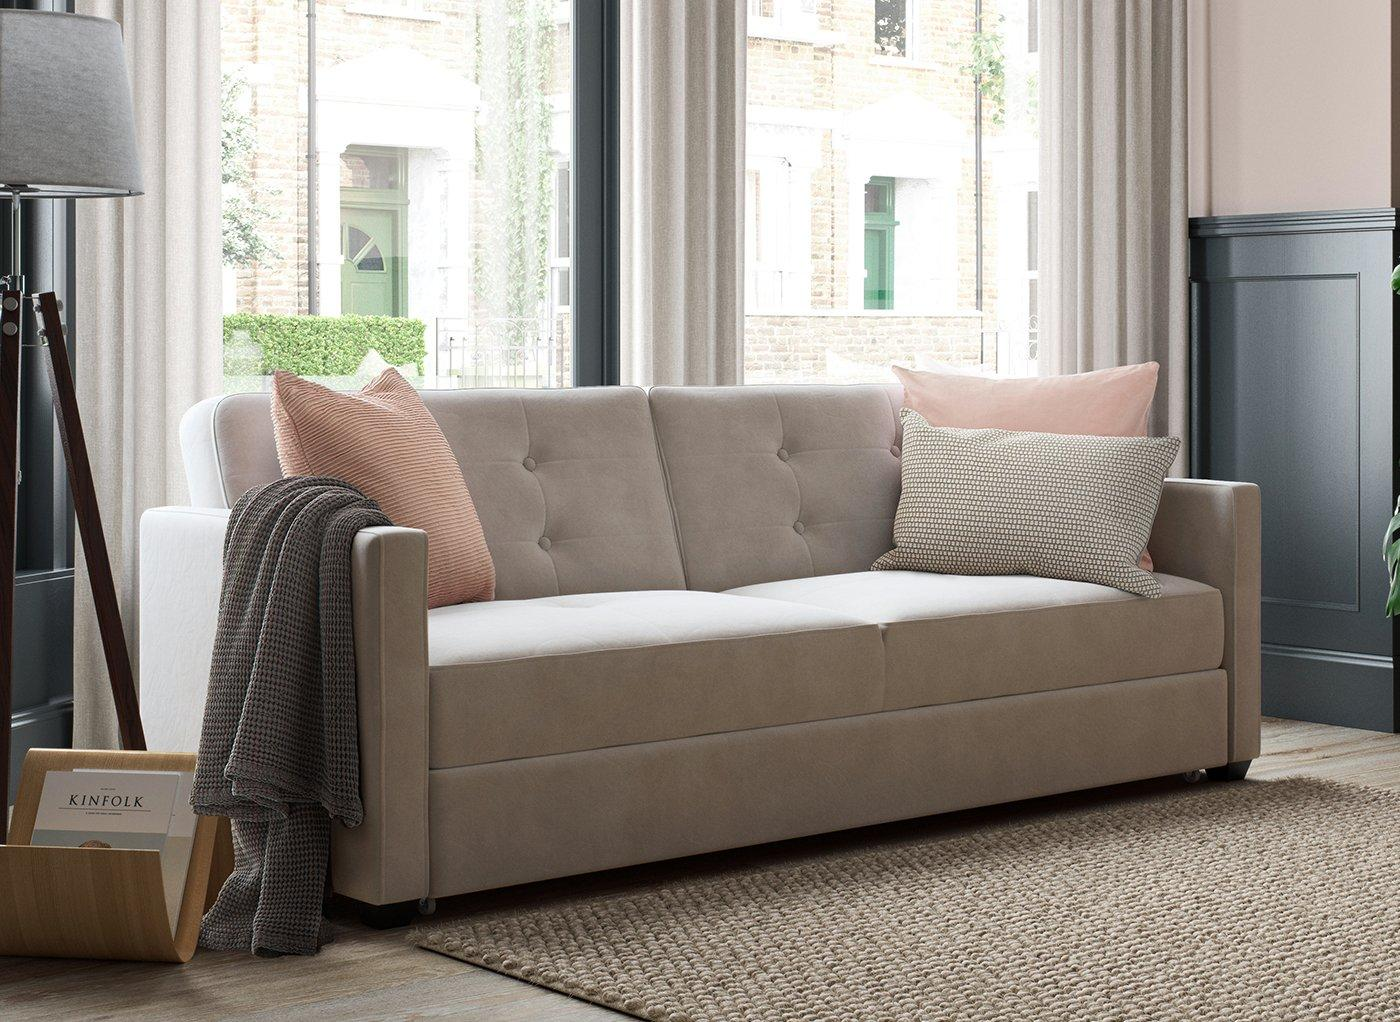 belfast-3-seater-clic-clac-storage-sofa-bed